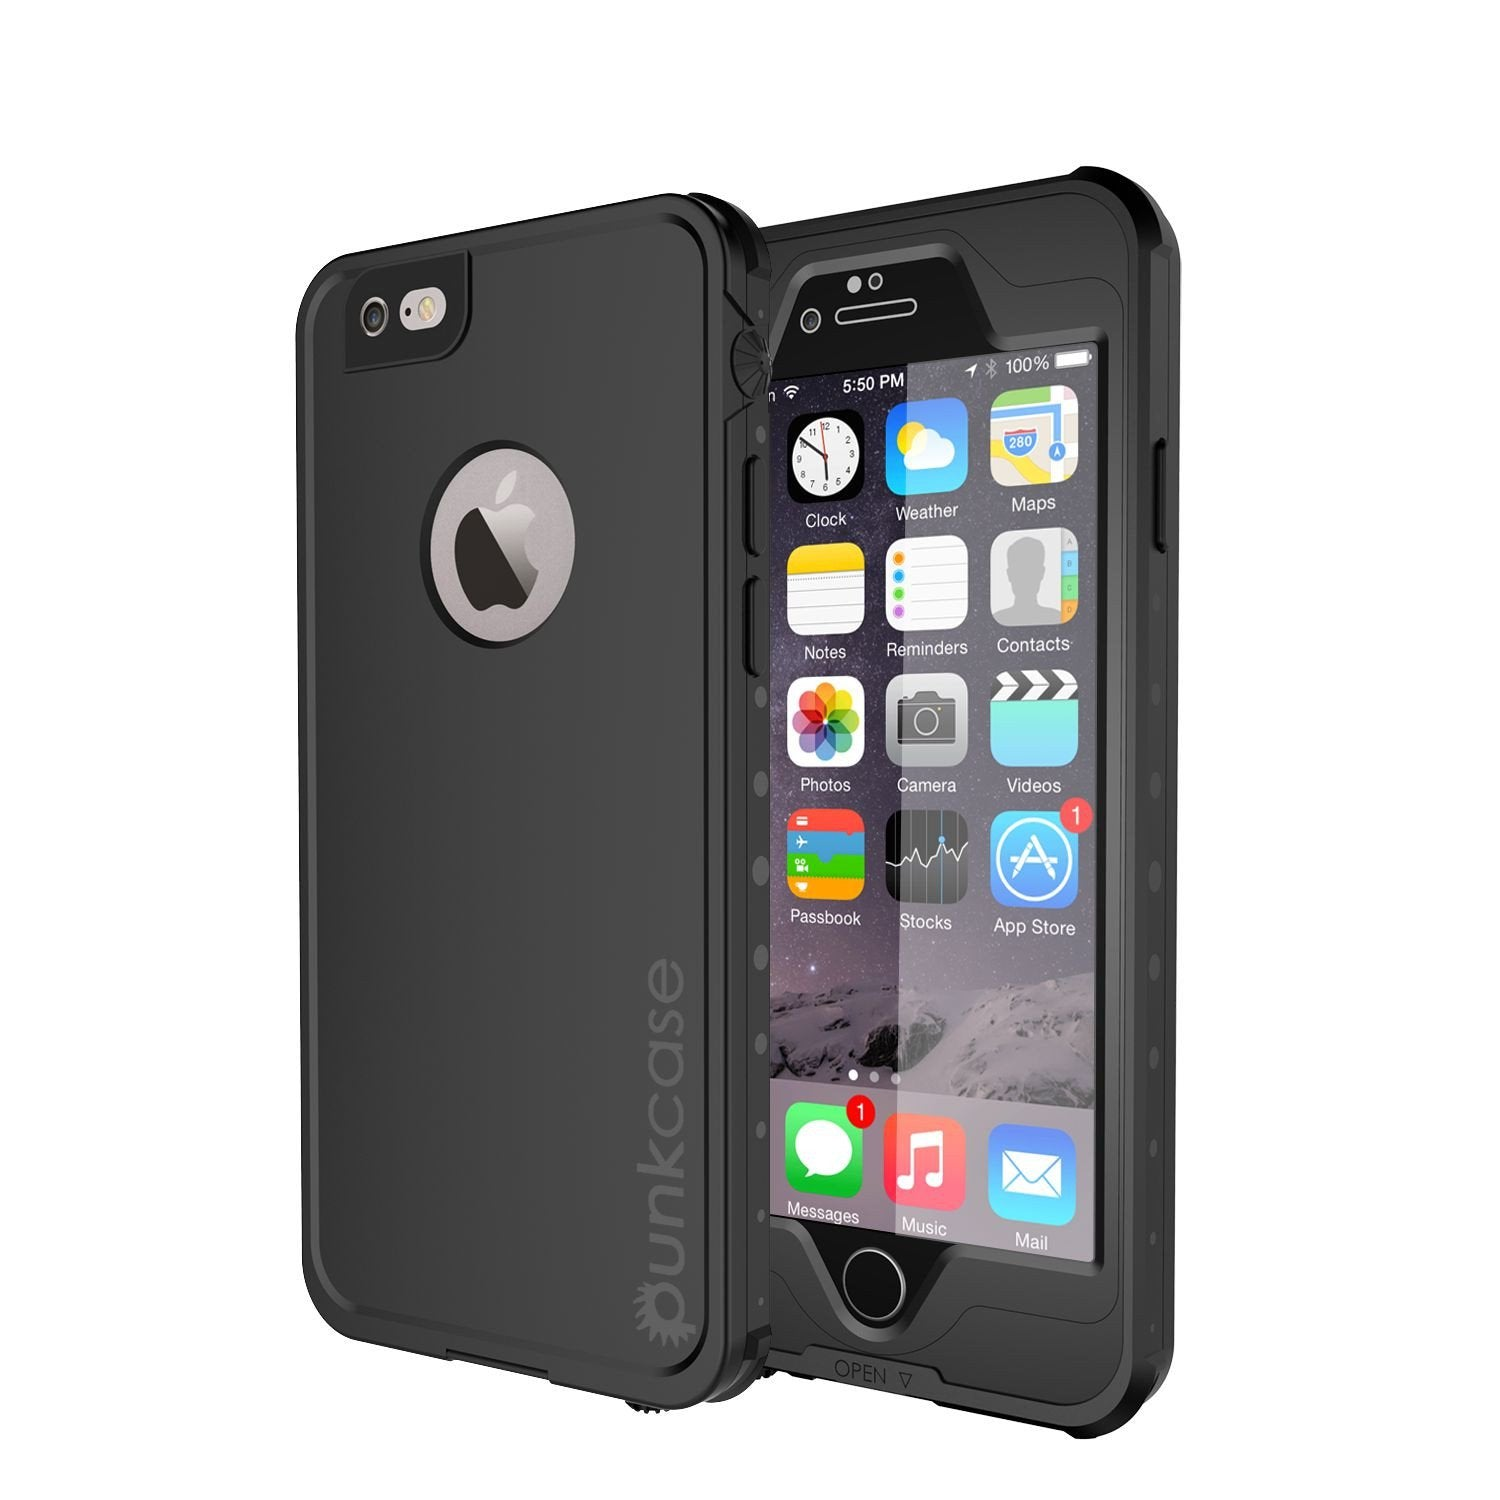 iPhone 6S+/6+ Plus Waterproof Case, PUNKcase StudStar Black w/ Attached Screen Protector | Warranty